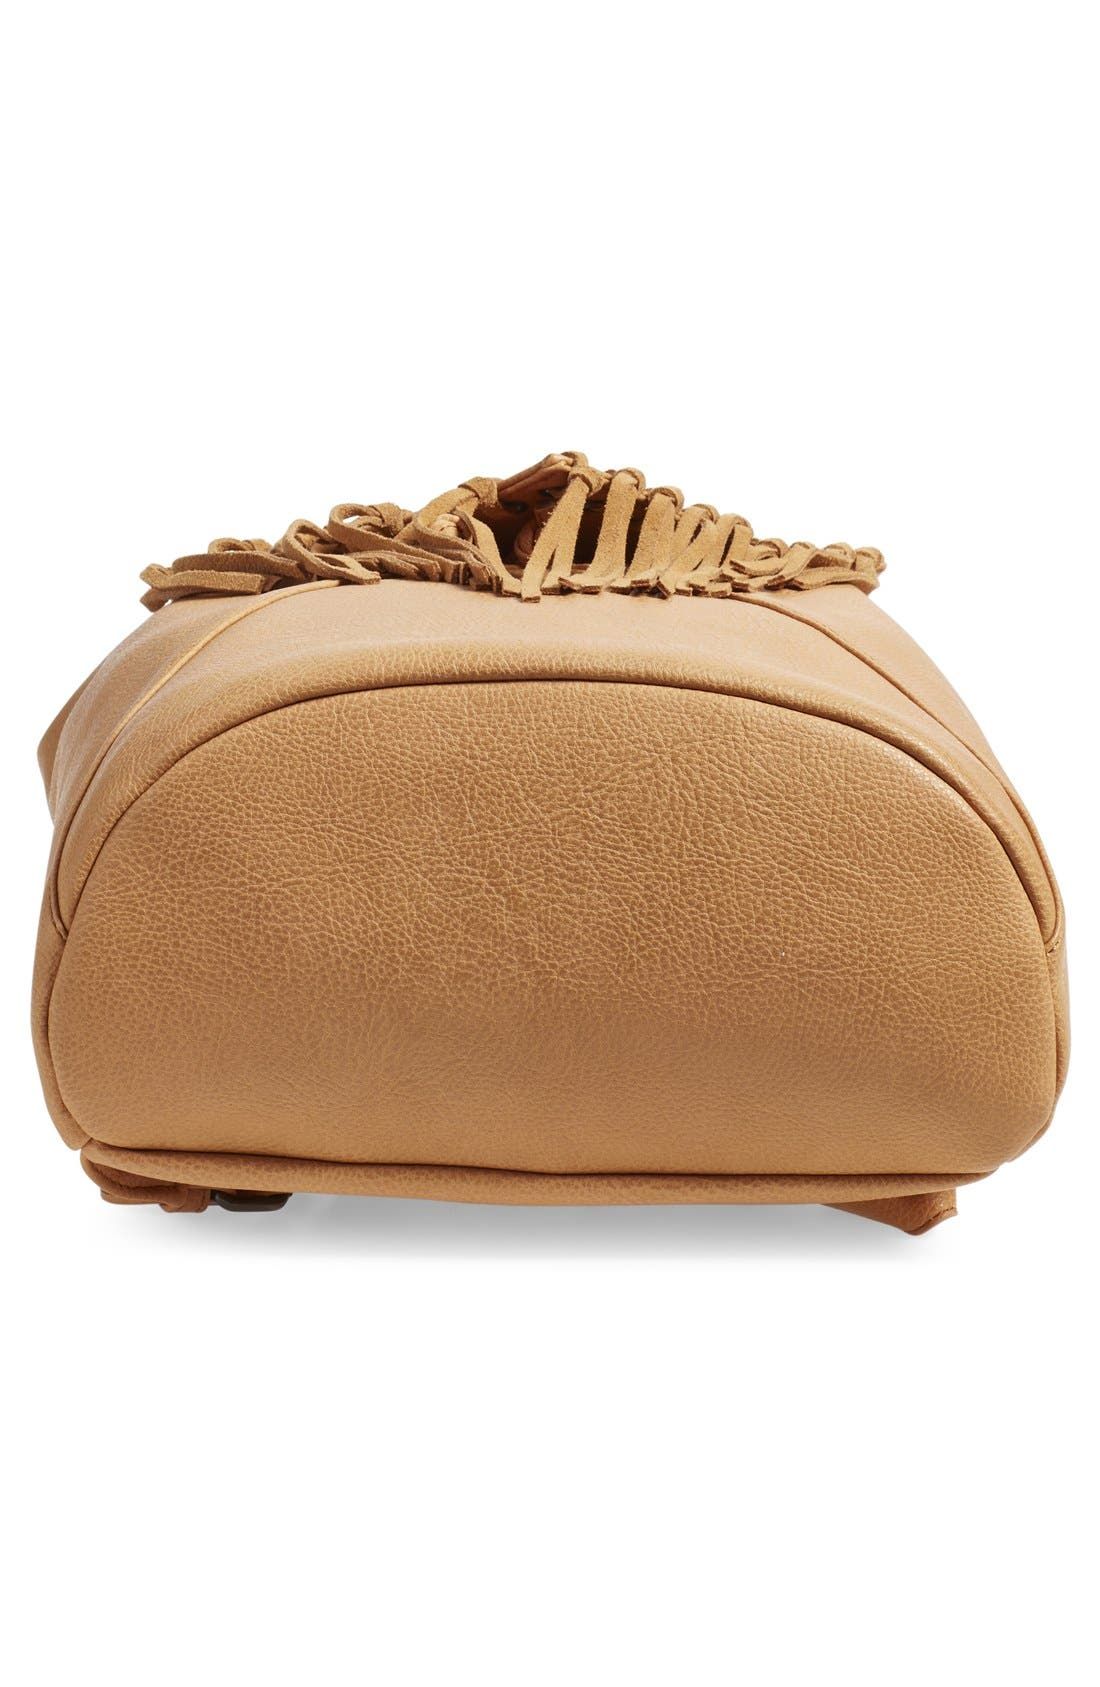 'Hartley' Faux Leather Backpack,                             Alternate thumbnail 6, color,                             Camel